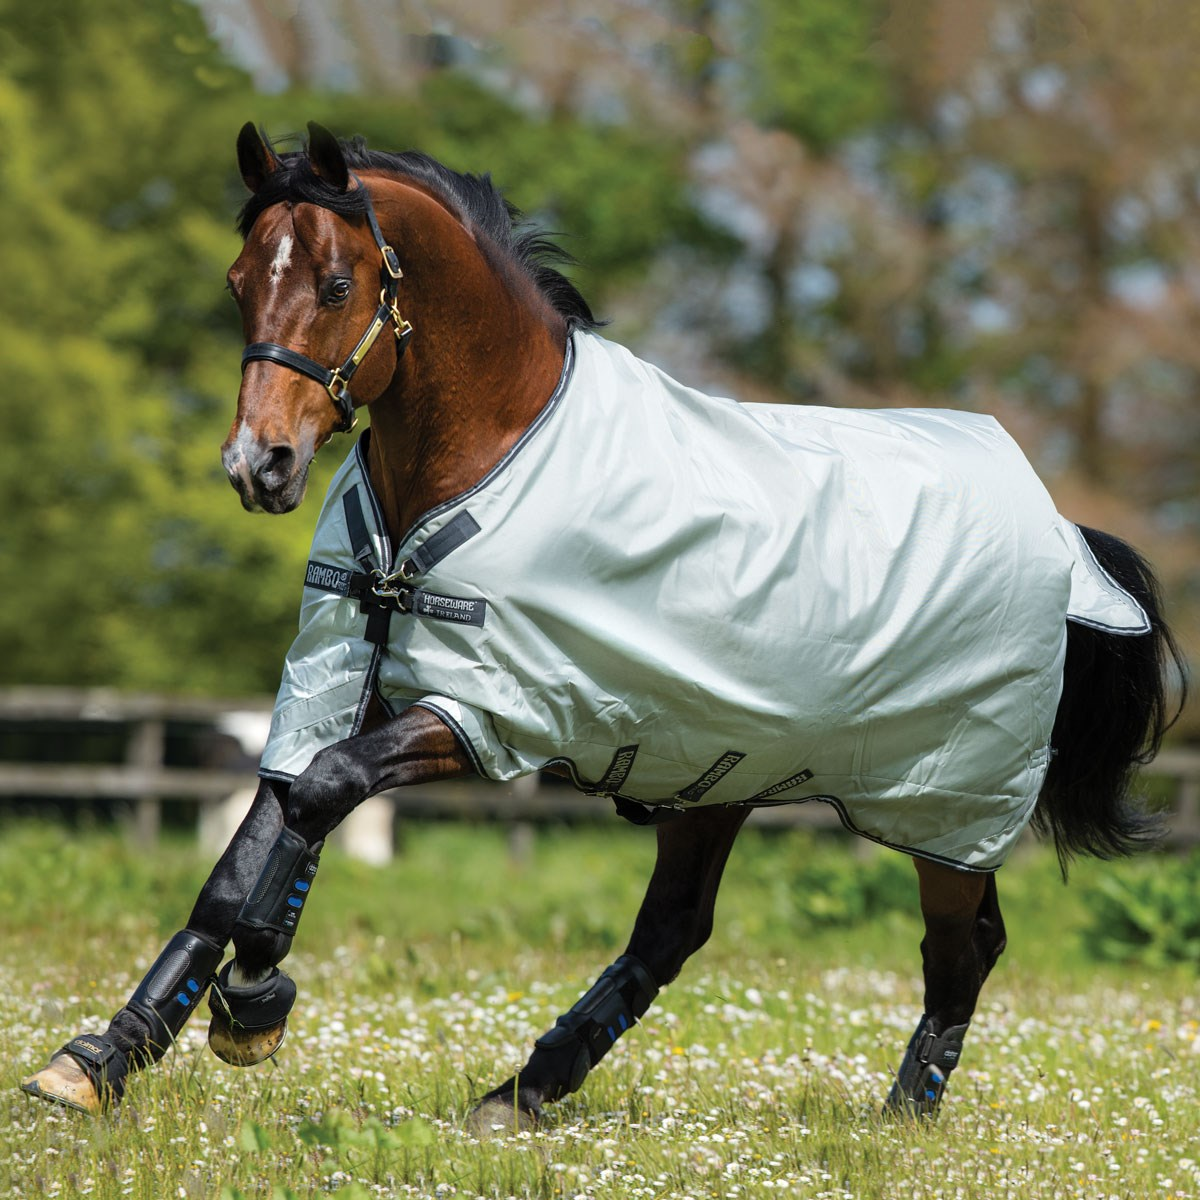 Rambo Original 100g Turnout Rug With Leg Arches Grey Navy